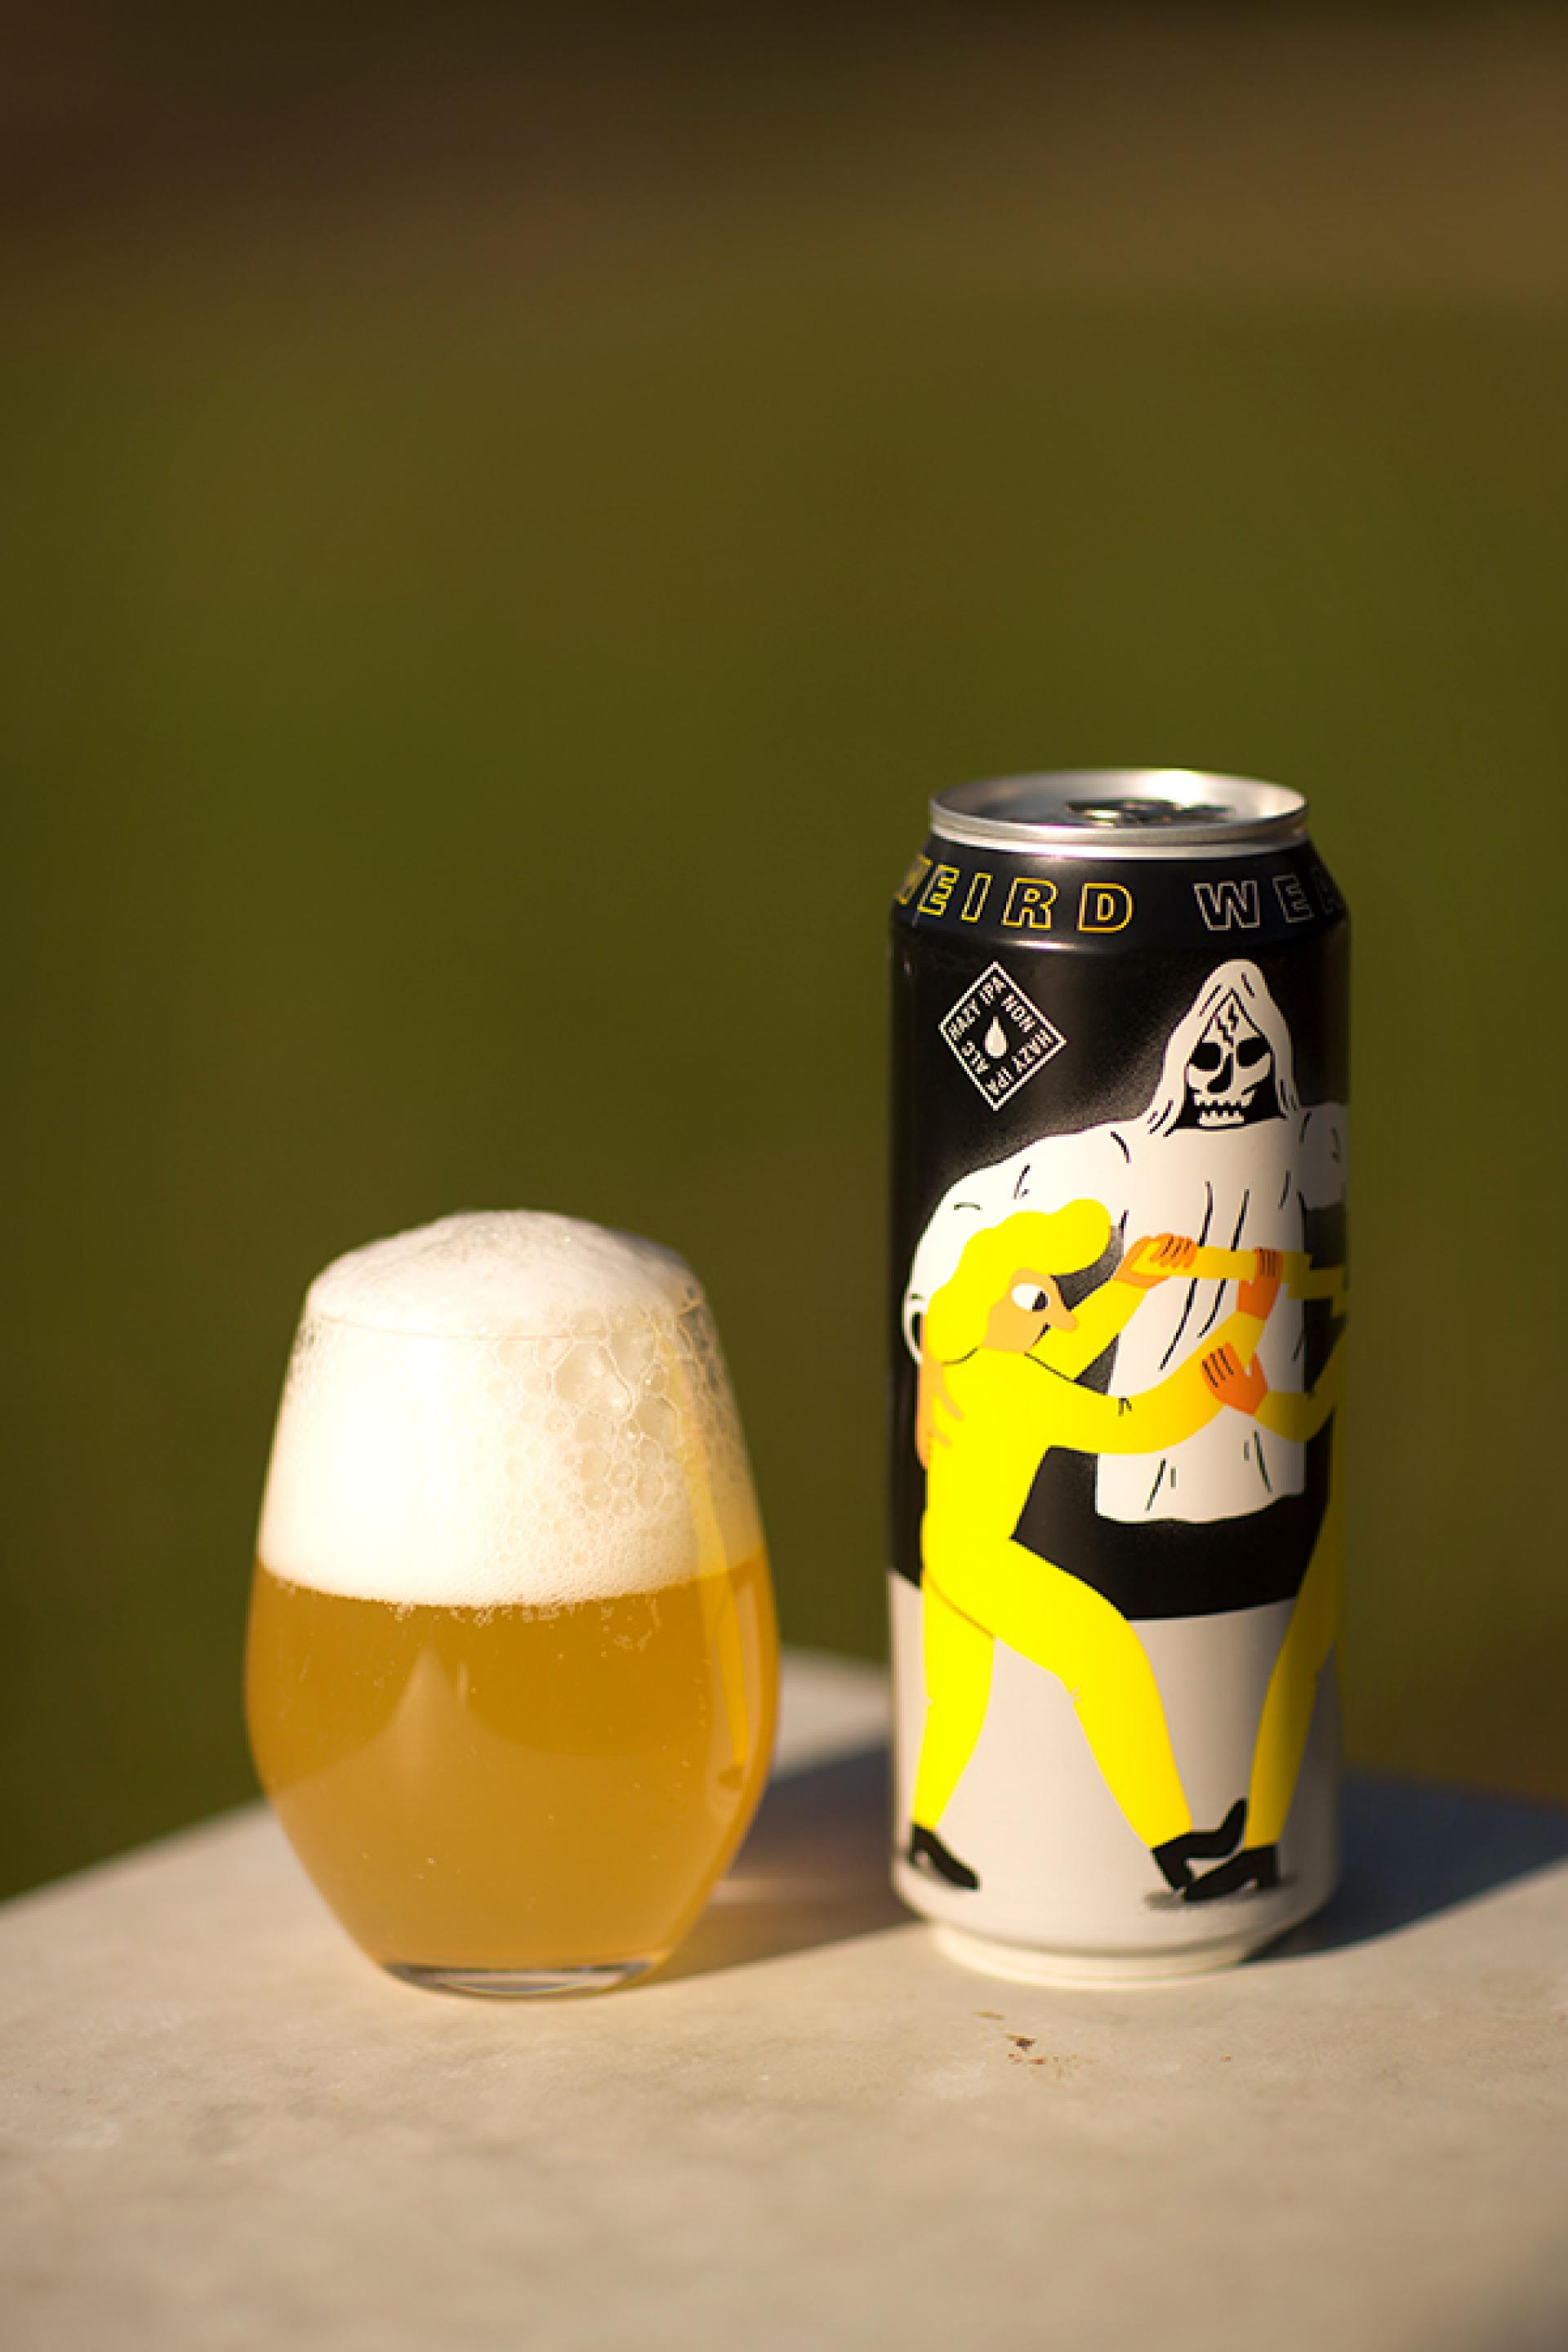 Non Alcoholic Beers London – Mikkeller's Weird Weather – 0.3% ABV